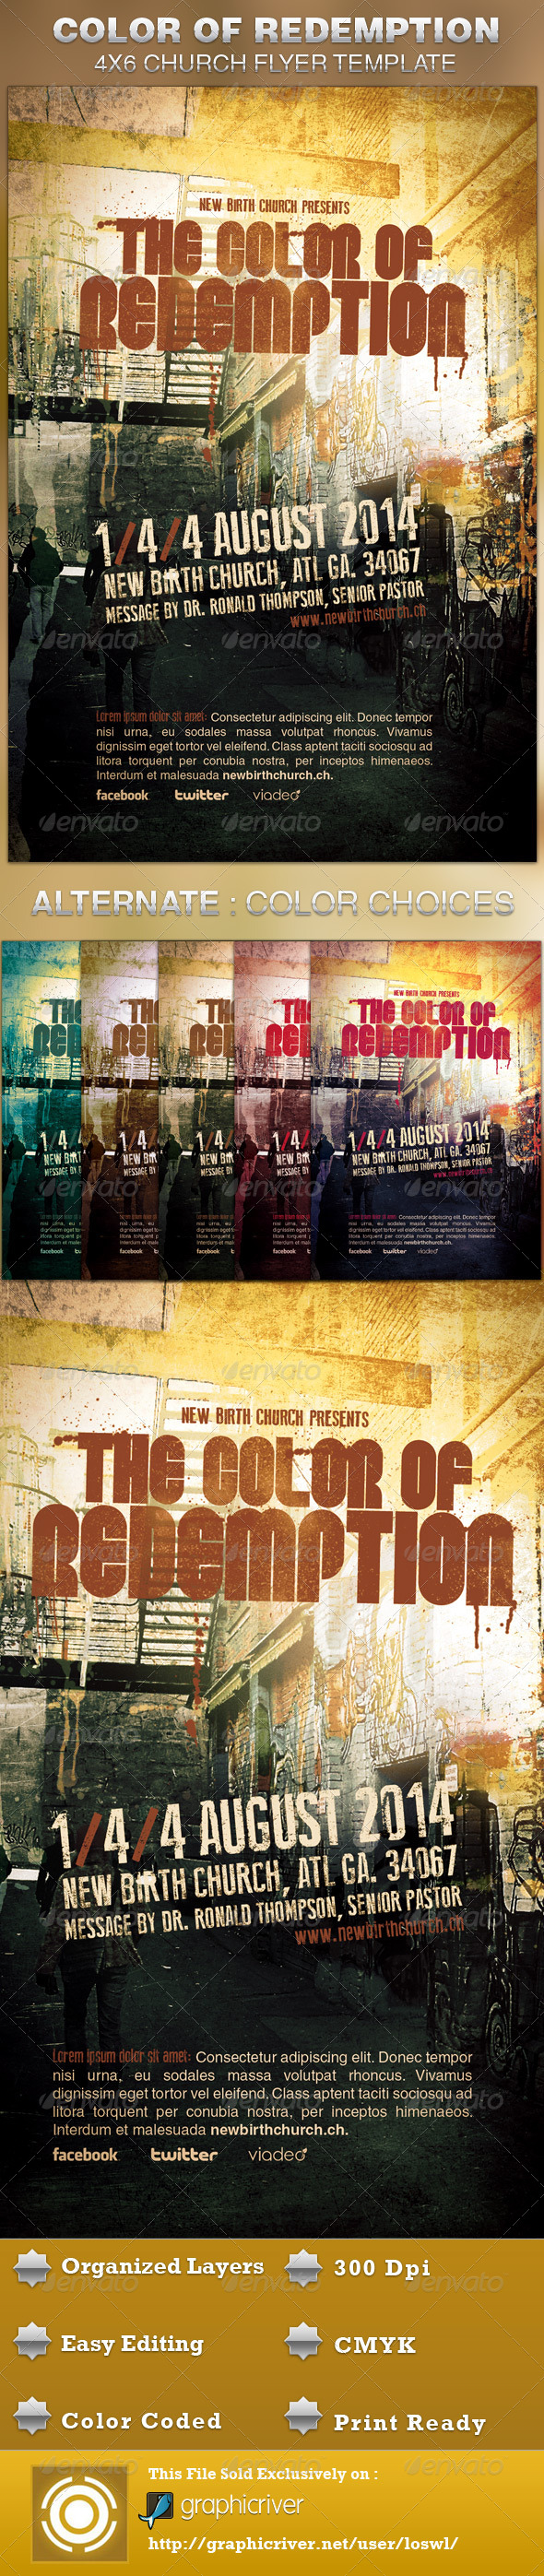 GraphicRiver The Color of Redemption Church Flyer Template 5093270